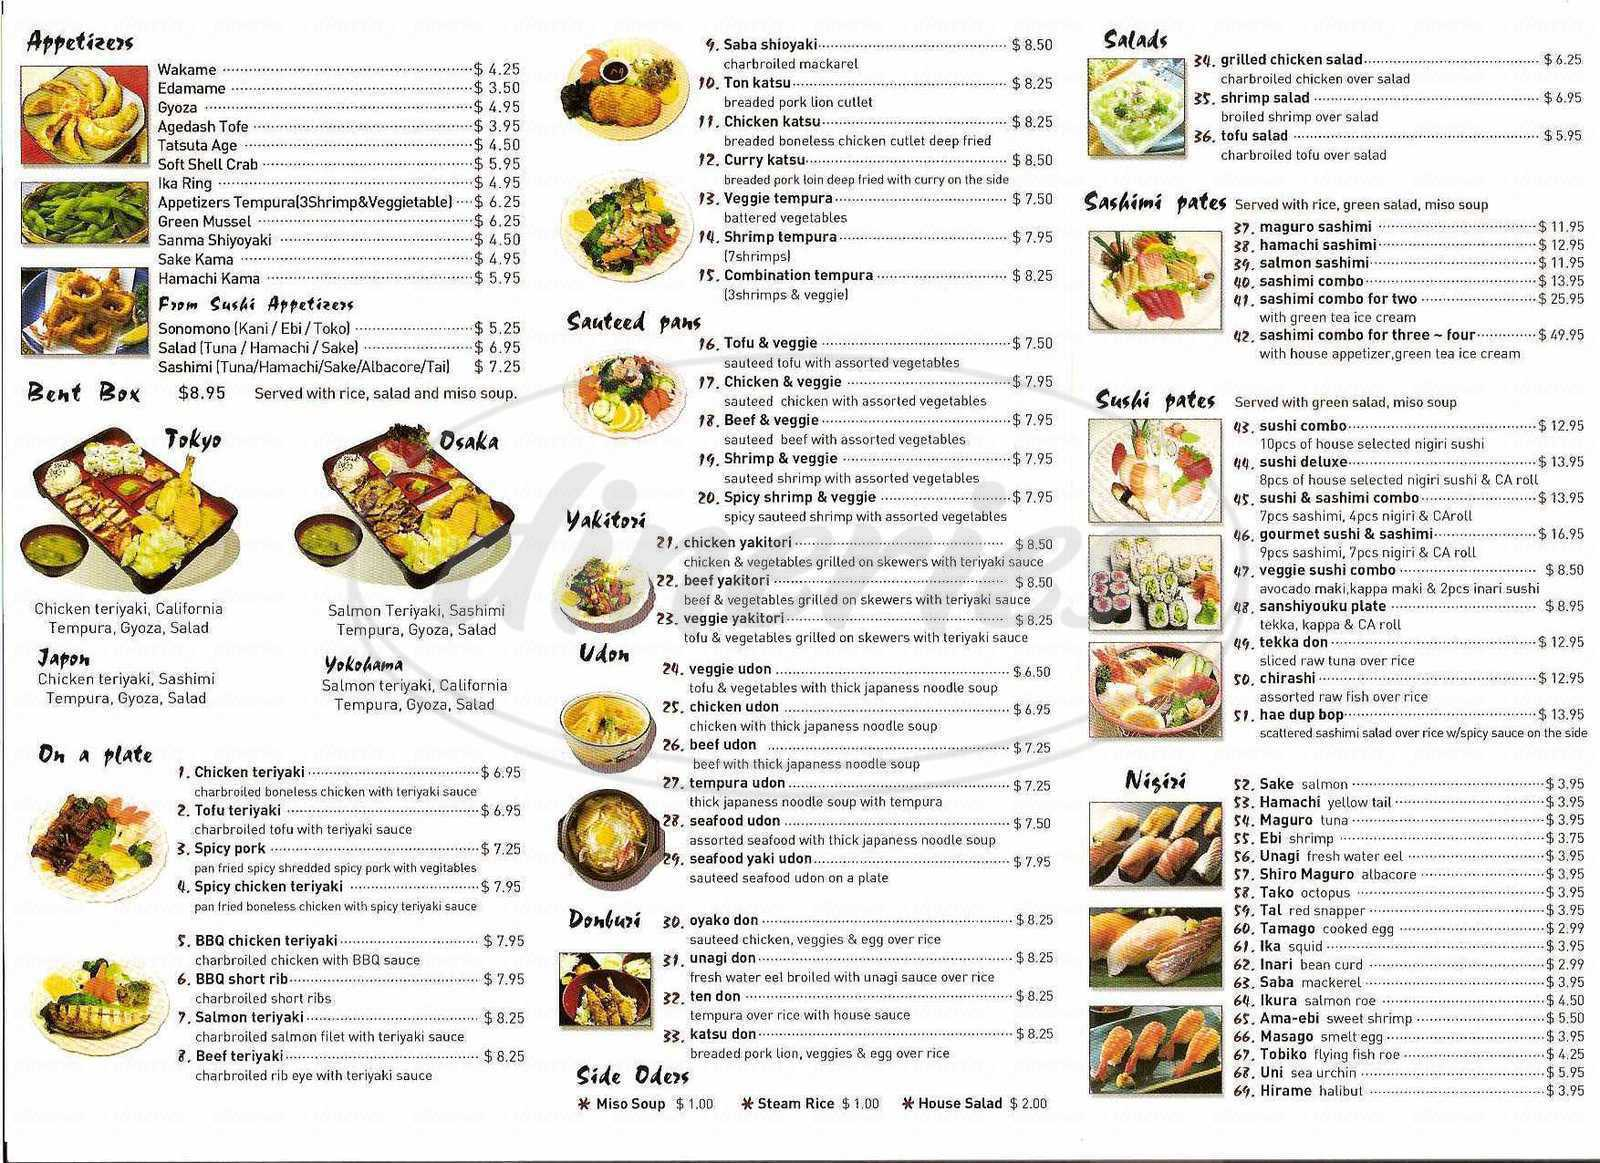 menu for Ichi Japan